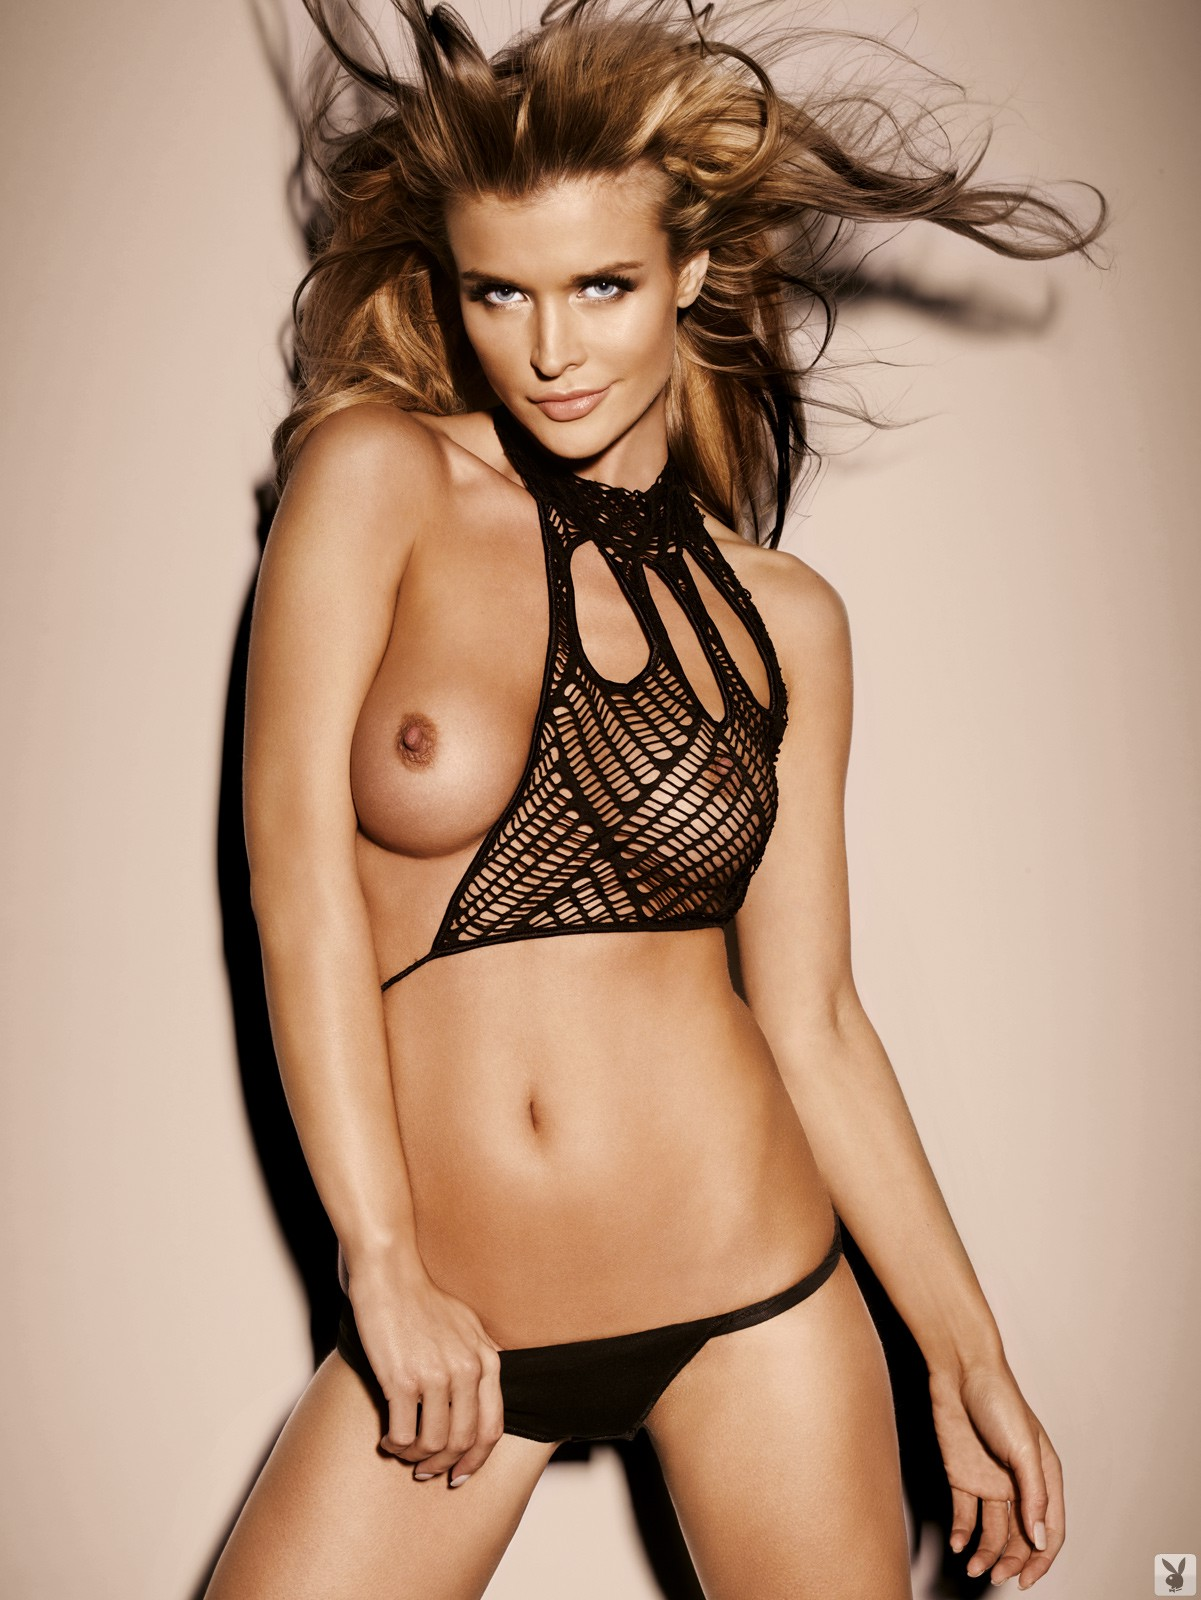 Joanna Krupa Nude in Playboy